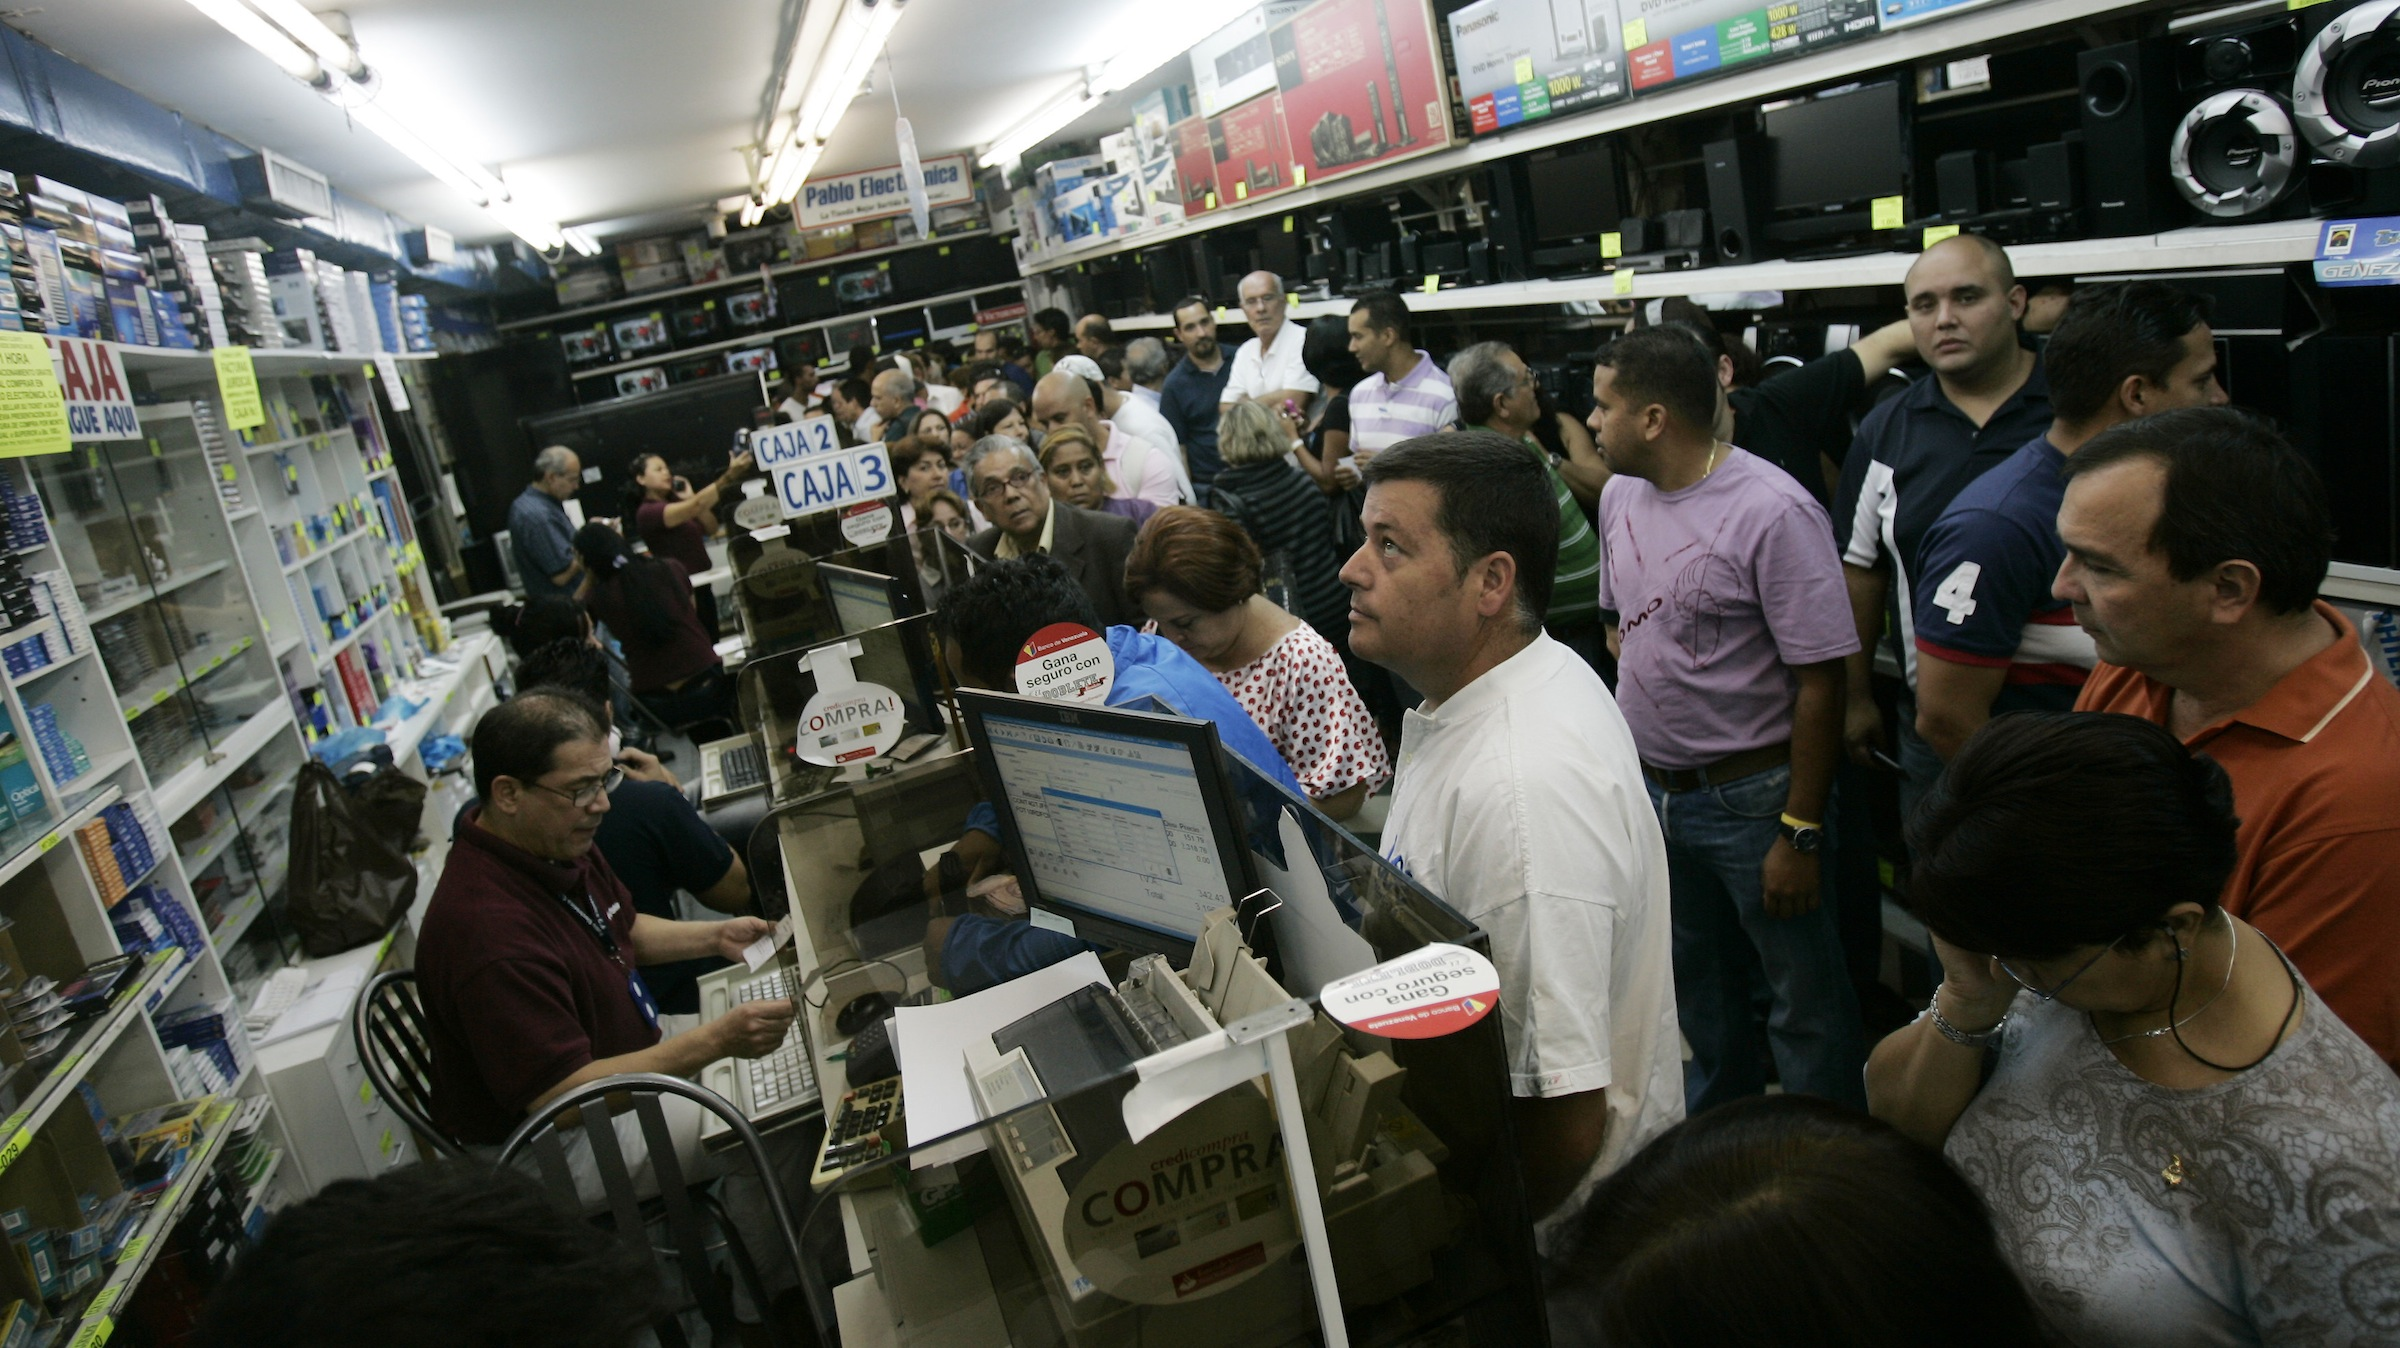 People crowd to buy electrical appliances at a shop in Caracas, Monday, Jan. 11, 2010. The currency's official exchange rate had been held steady by the government at 2.15 bolivars to the dollar since the last devaluation in March 2005. Venezuela's President Hugo Chavez said the bolivar will now have two government-set rates: 2.6 to the dollar for transactions deemed priorities by the government, and 4.3 to the dollar for other transactions. (AP Photo/Leonardo Ramirez)